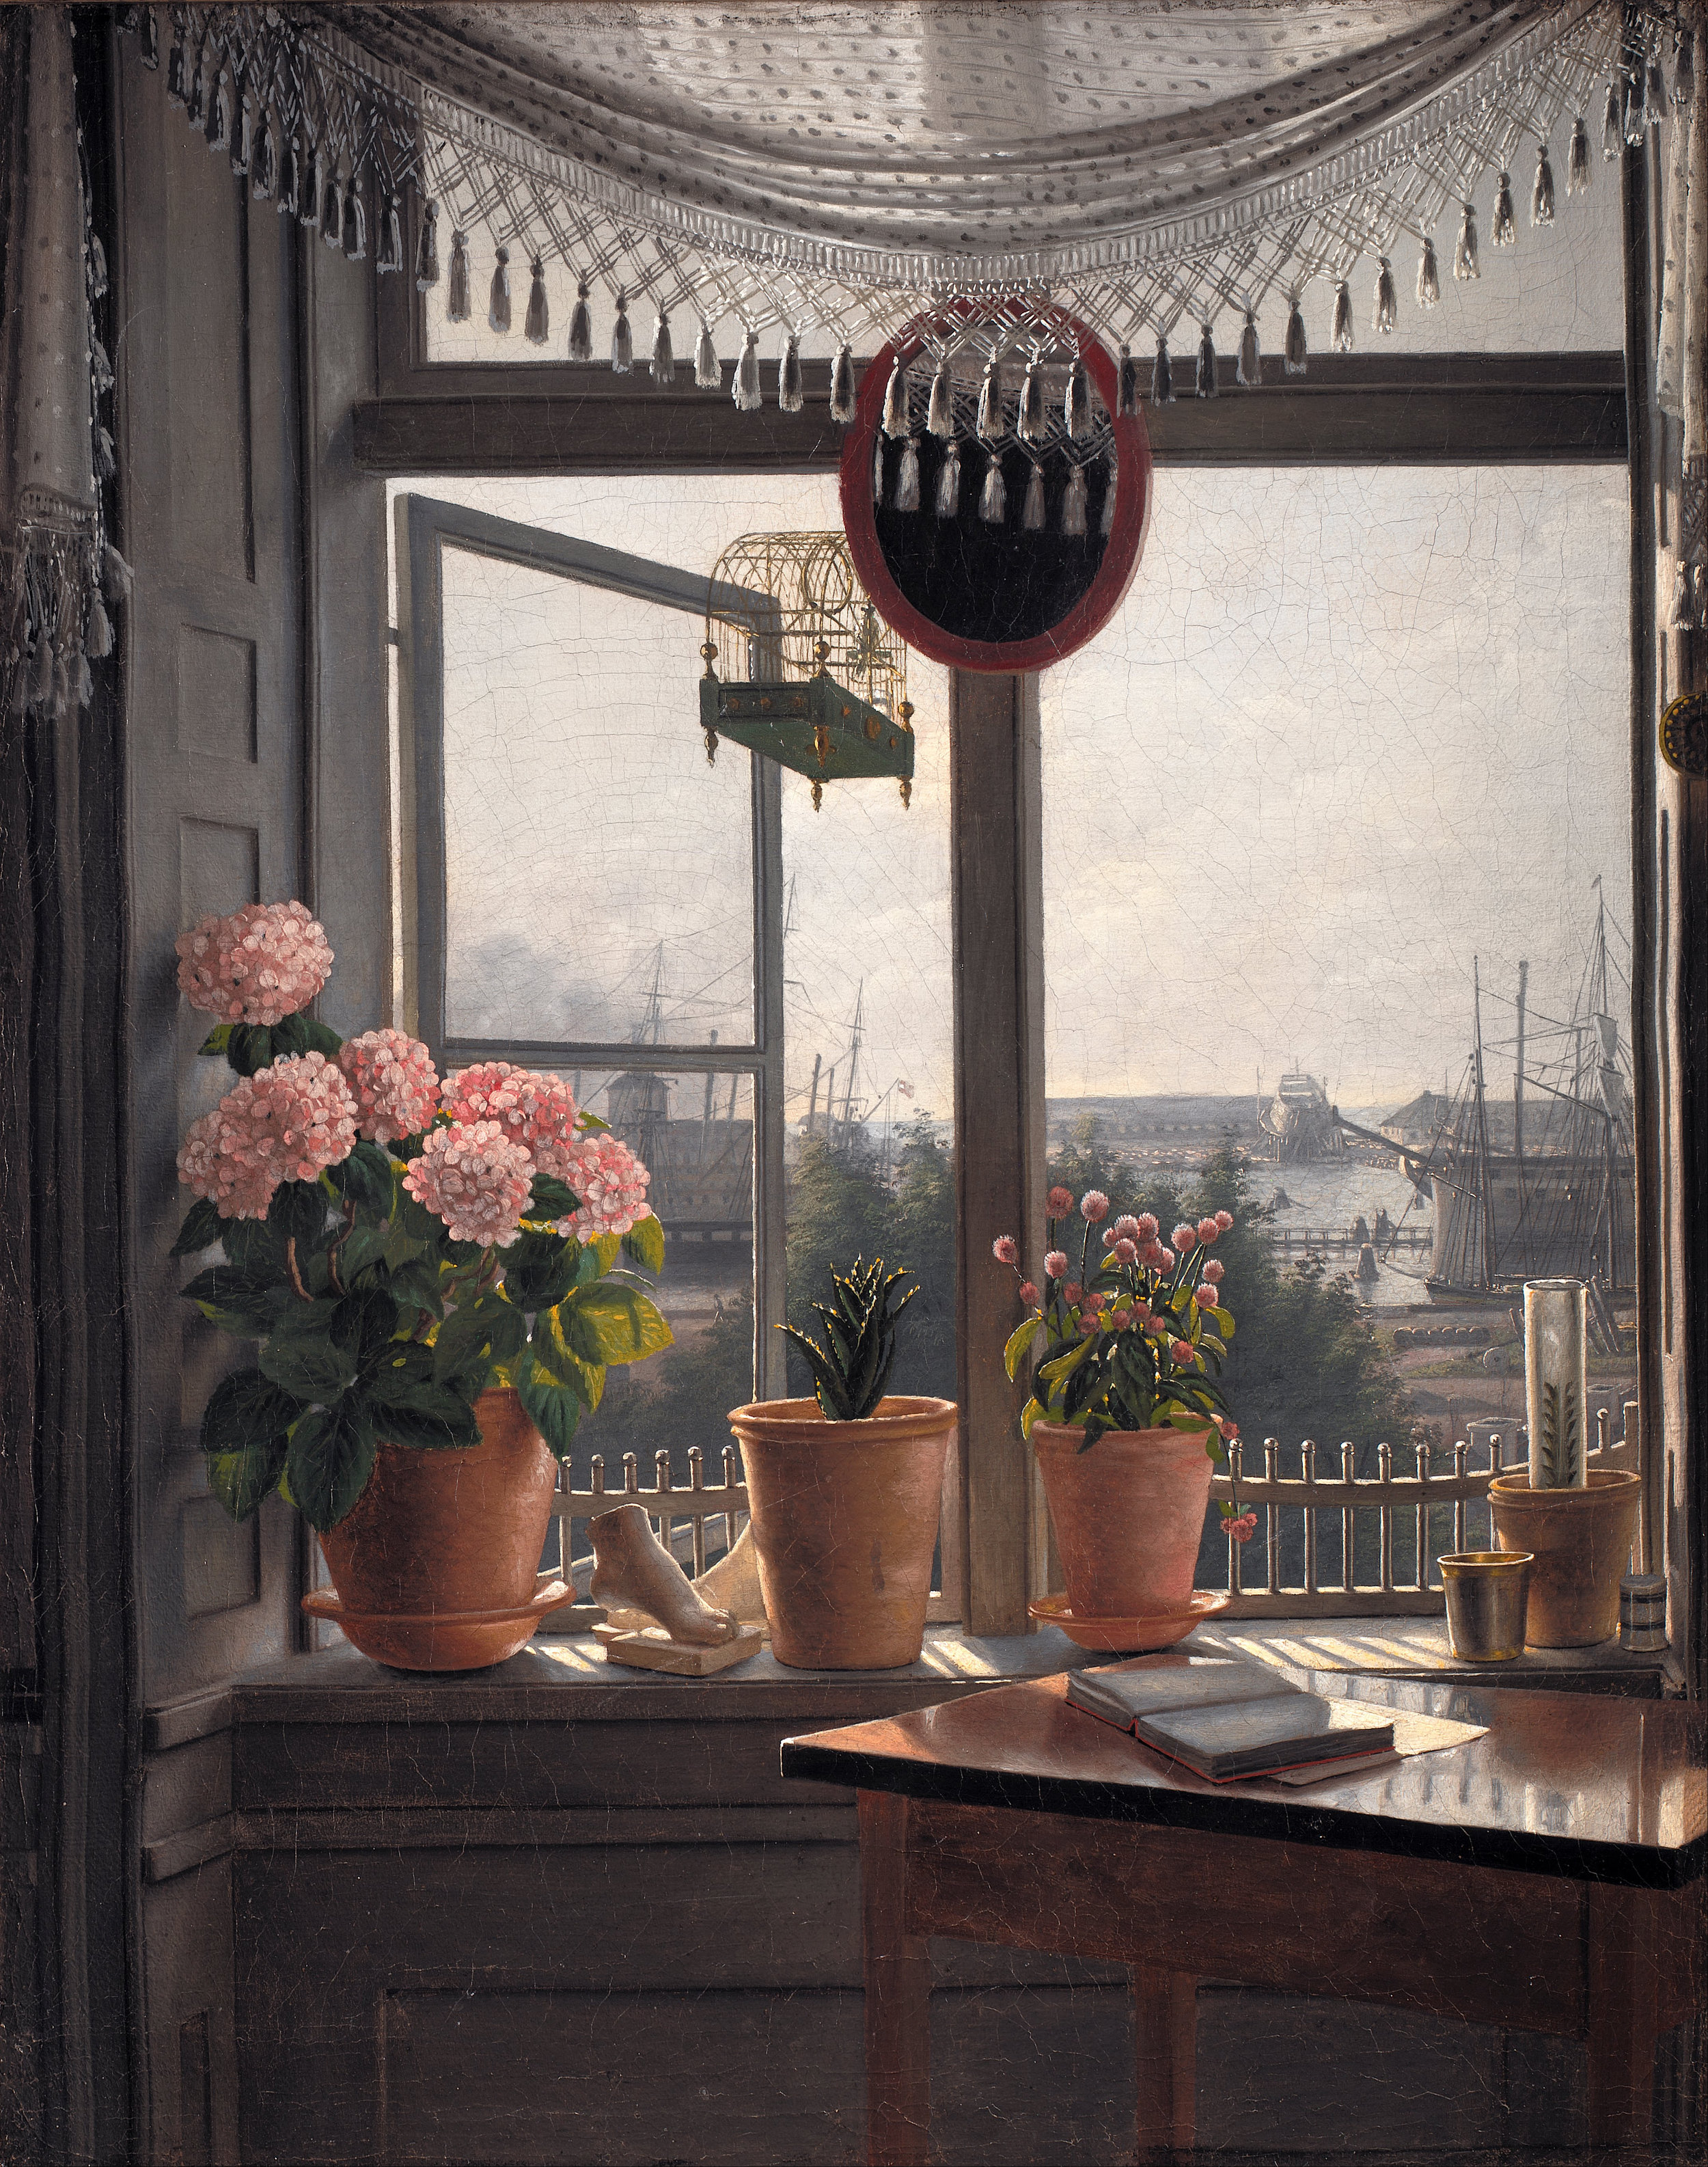 Martinus_Rørbye_-_View_from_the_Artist's_Window_-_Google_Art_Project.jpg